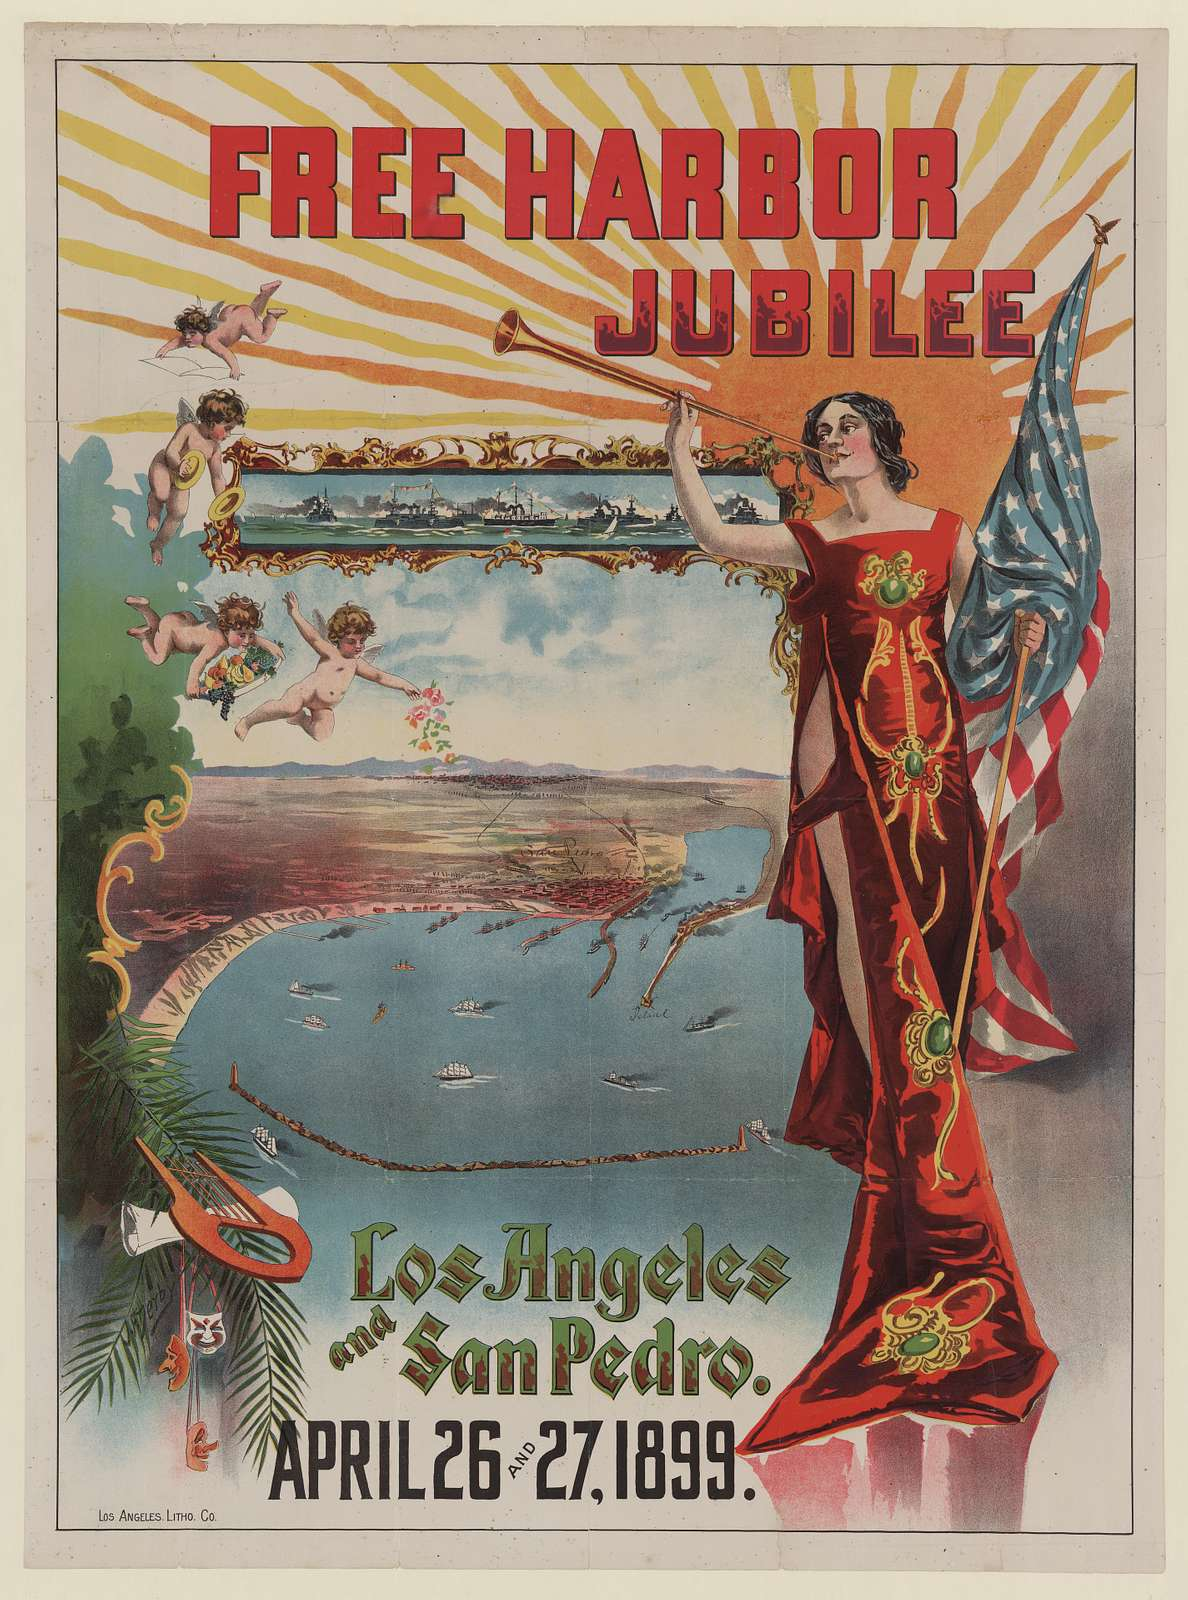 Free harbor jubilee, Los Angeles and San Pedro. April 26 and 27 1899 / J.F. Derby.